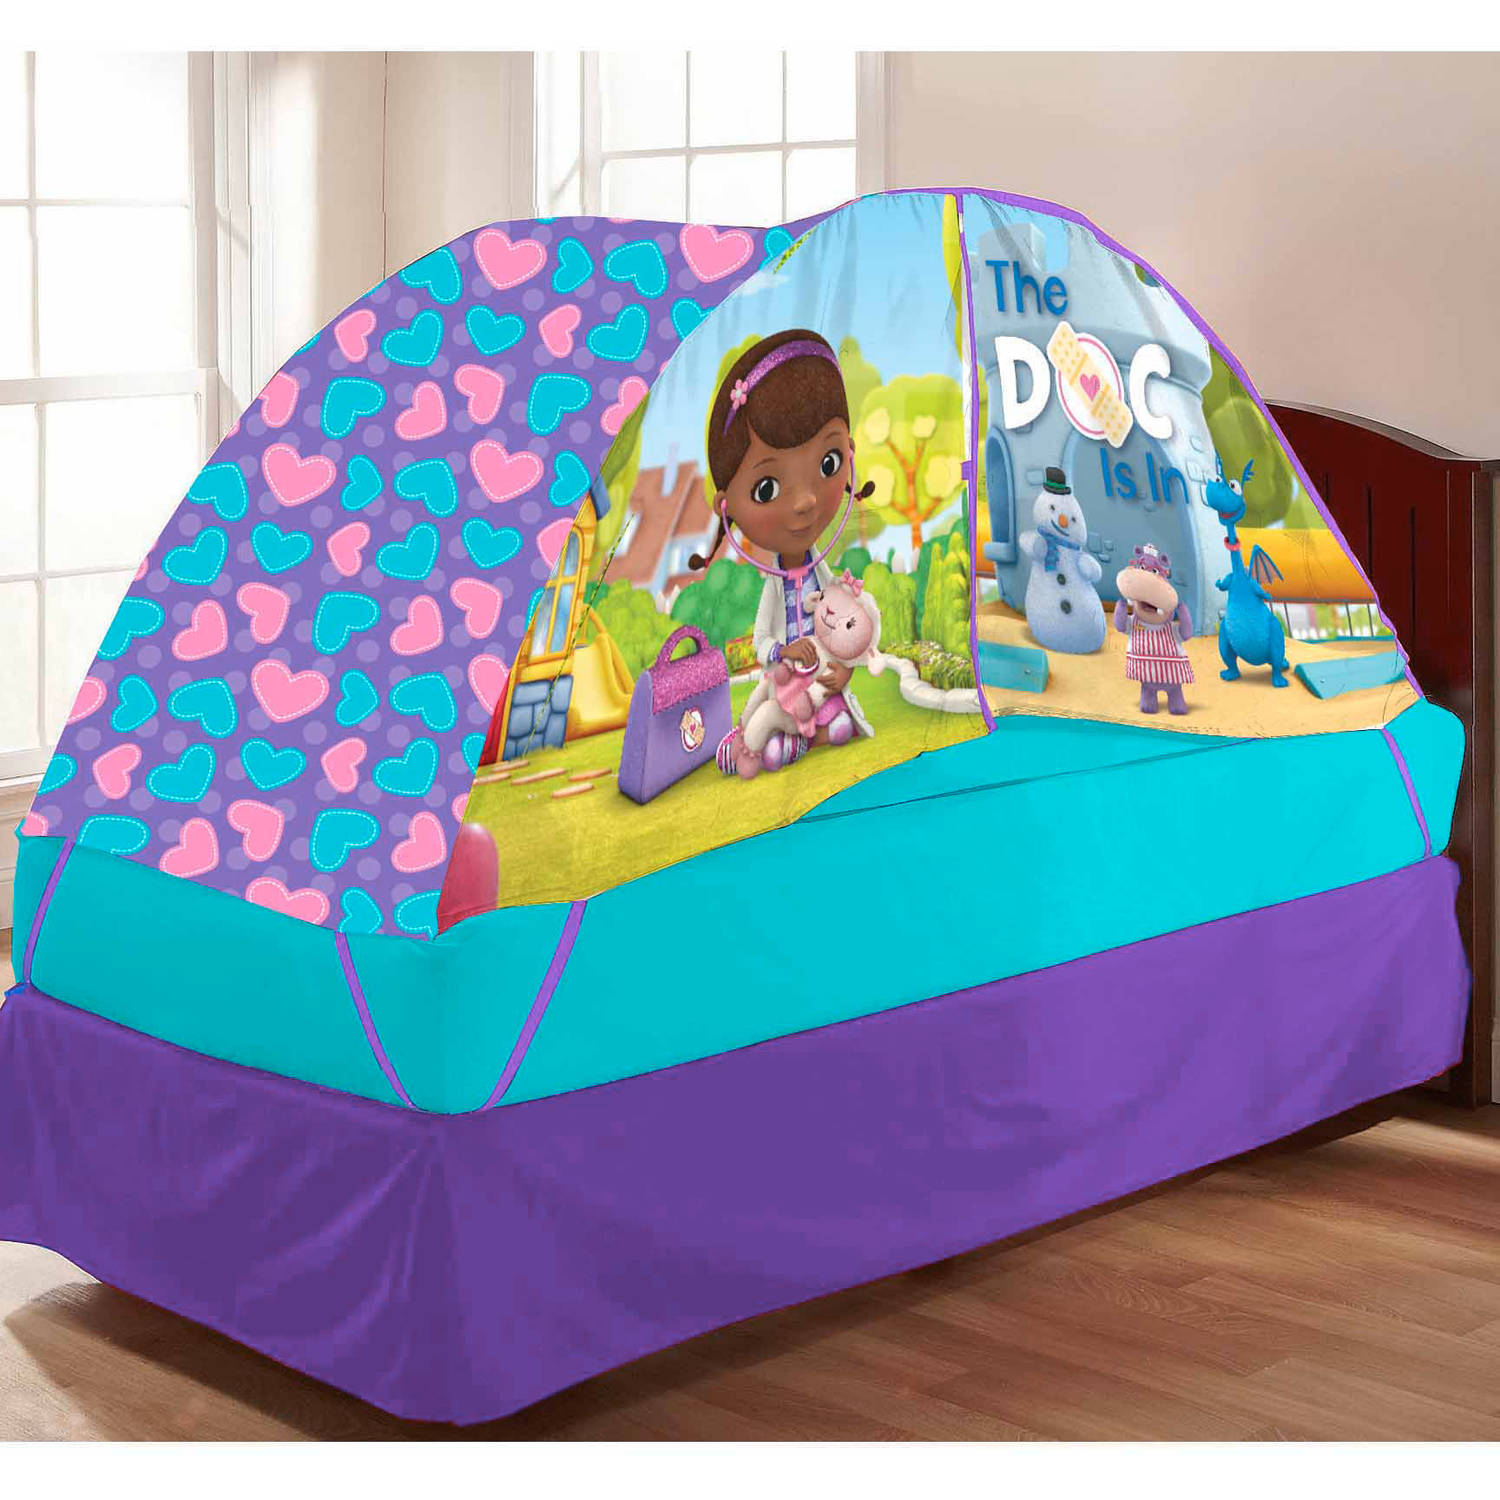 Idea Nuova Doc McStuffin Bed Tent with Pushlight